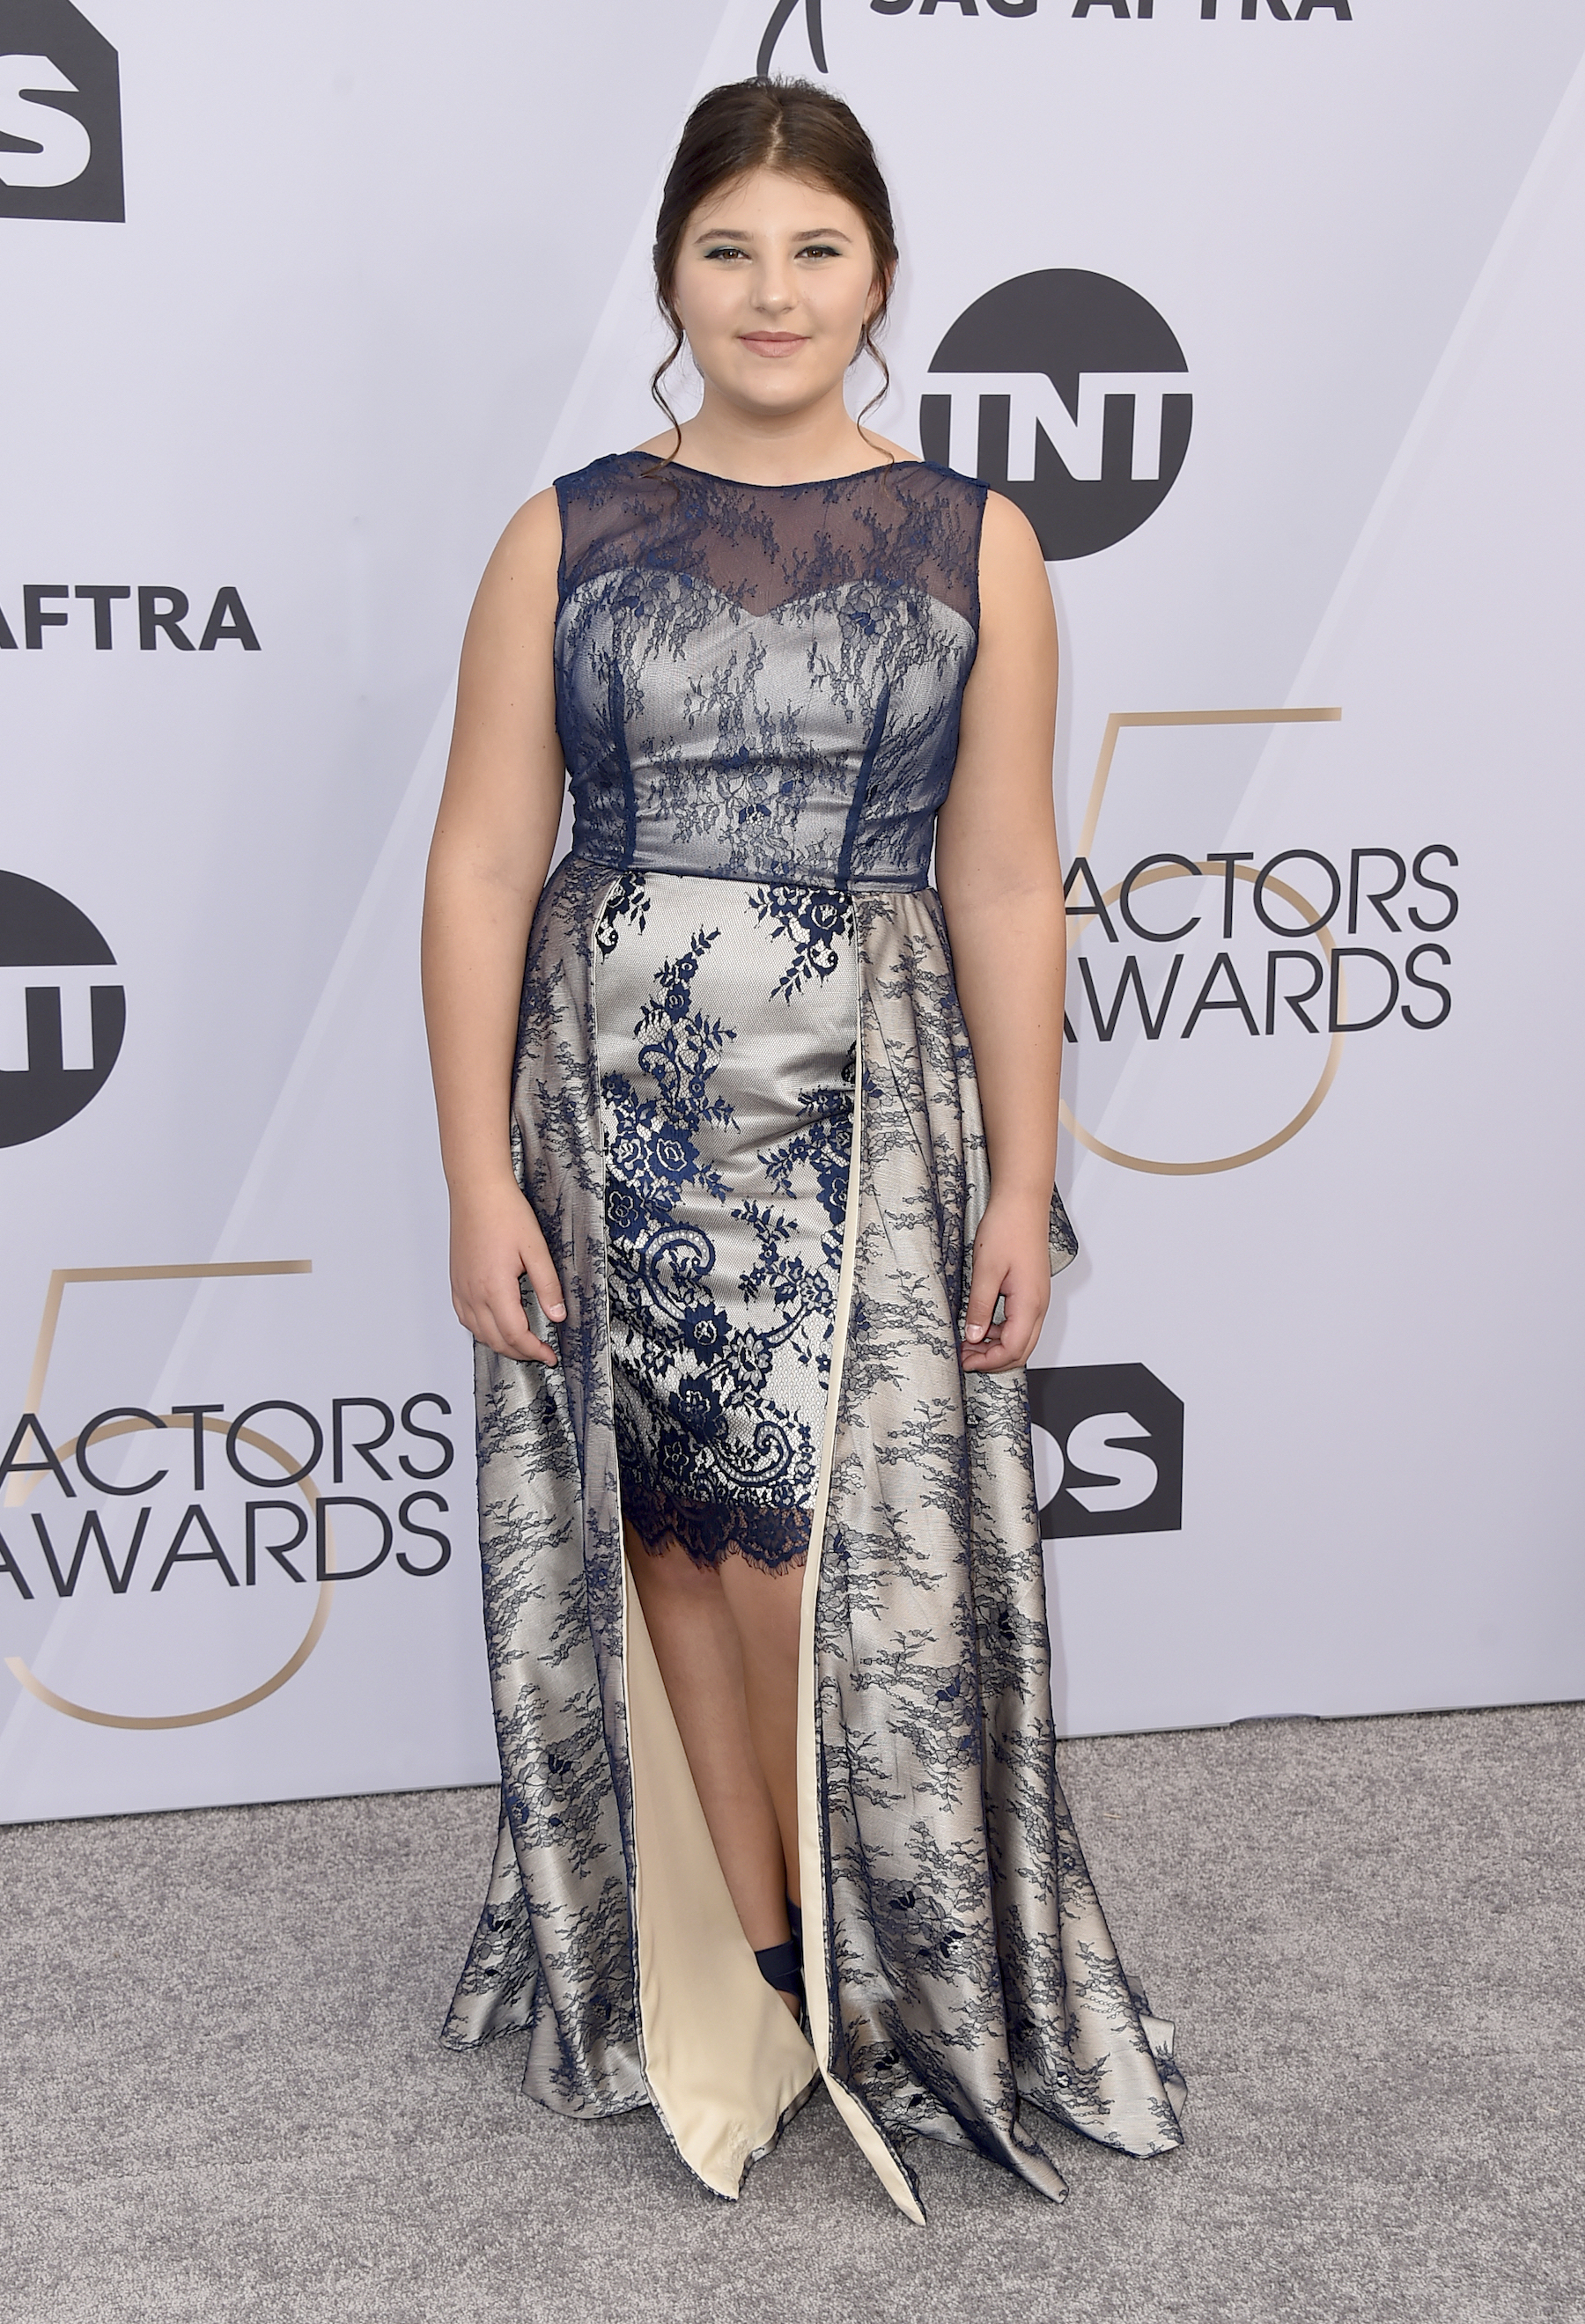 "<div class=""meta image-caption""><div class=""origin-logo origin-image ap""><span>AP</span></div><span class=""caption-text"">Mackenzie Hancsicsak arrives at the 25th annual Screen Actors Guild Awards at the Shrine Auditorium & Expo Hall on Sunday, Jan. 27, 2019, in Los Angeles. (Jordan Strauss/Invision/AP)</span></div>"